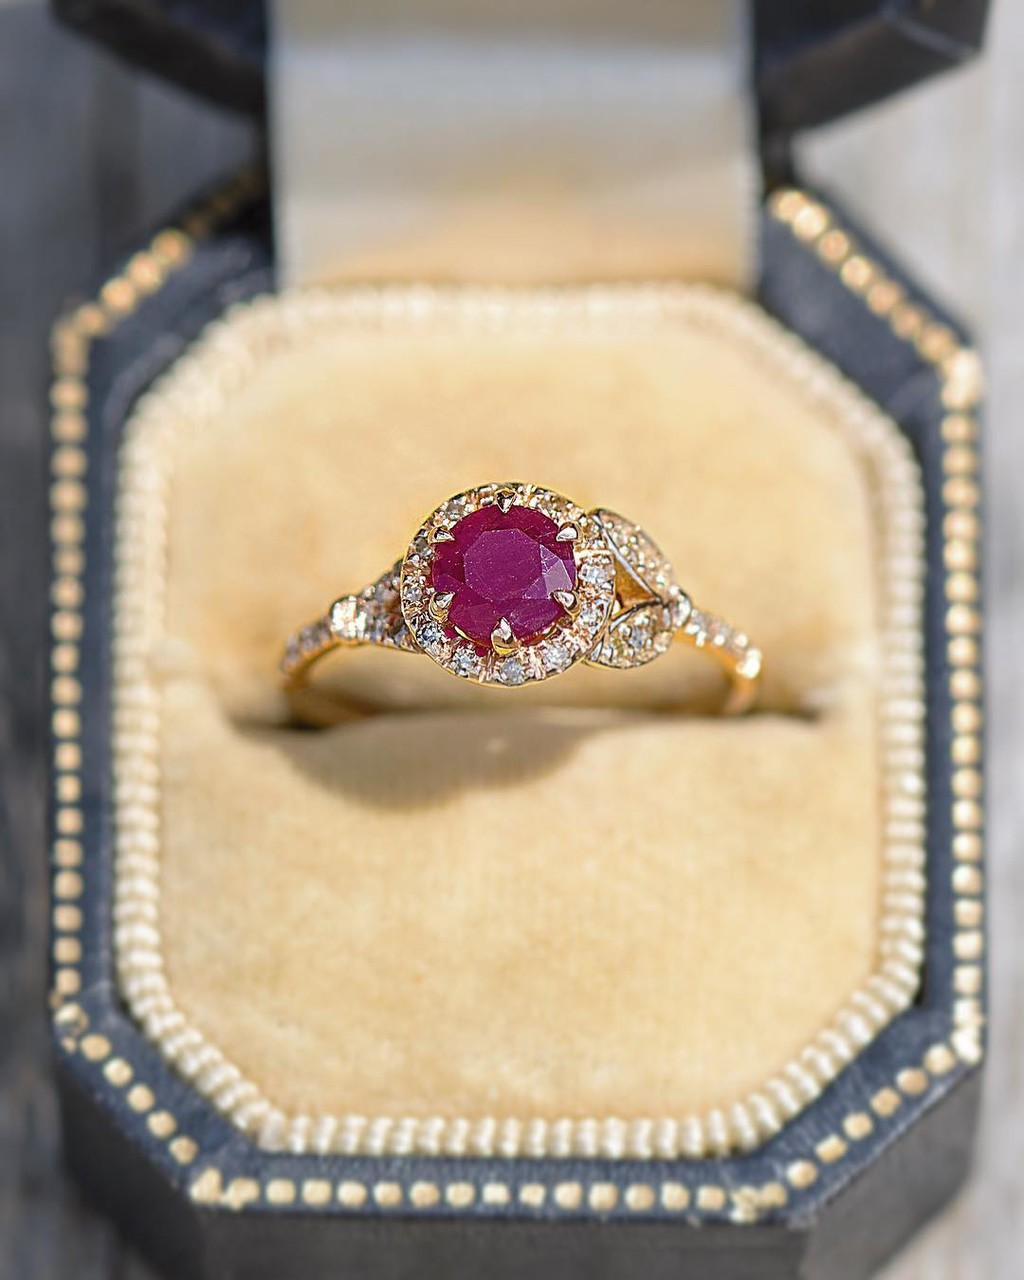 A very rare all natural, no-heat, raw Red Ruby mined in Wyoming State sits at the center of this glowing ring. So named after Wyoming